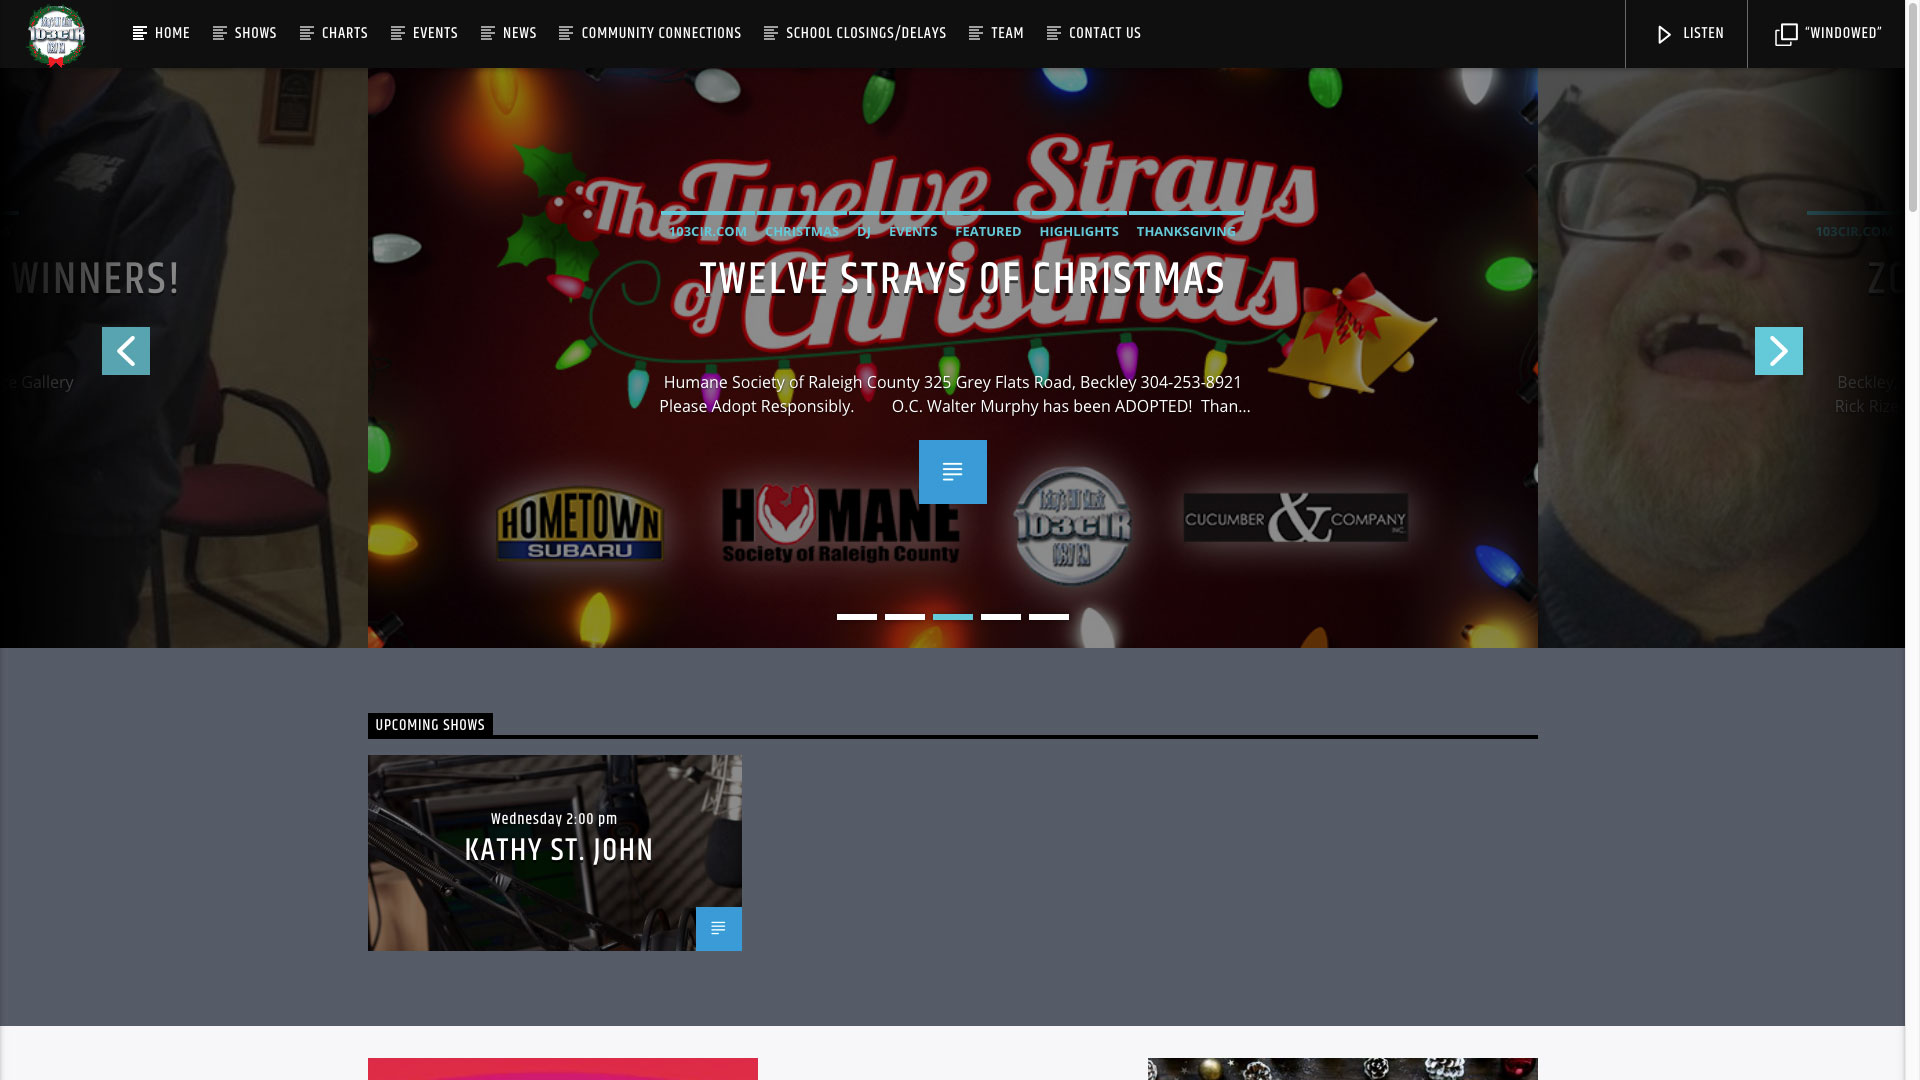 103CIR Radio Twelve Strays of Christmas Website by Cucumber & Company Best Websites in WV Beckley Princeton Bluefield Web Design